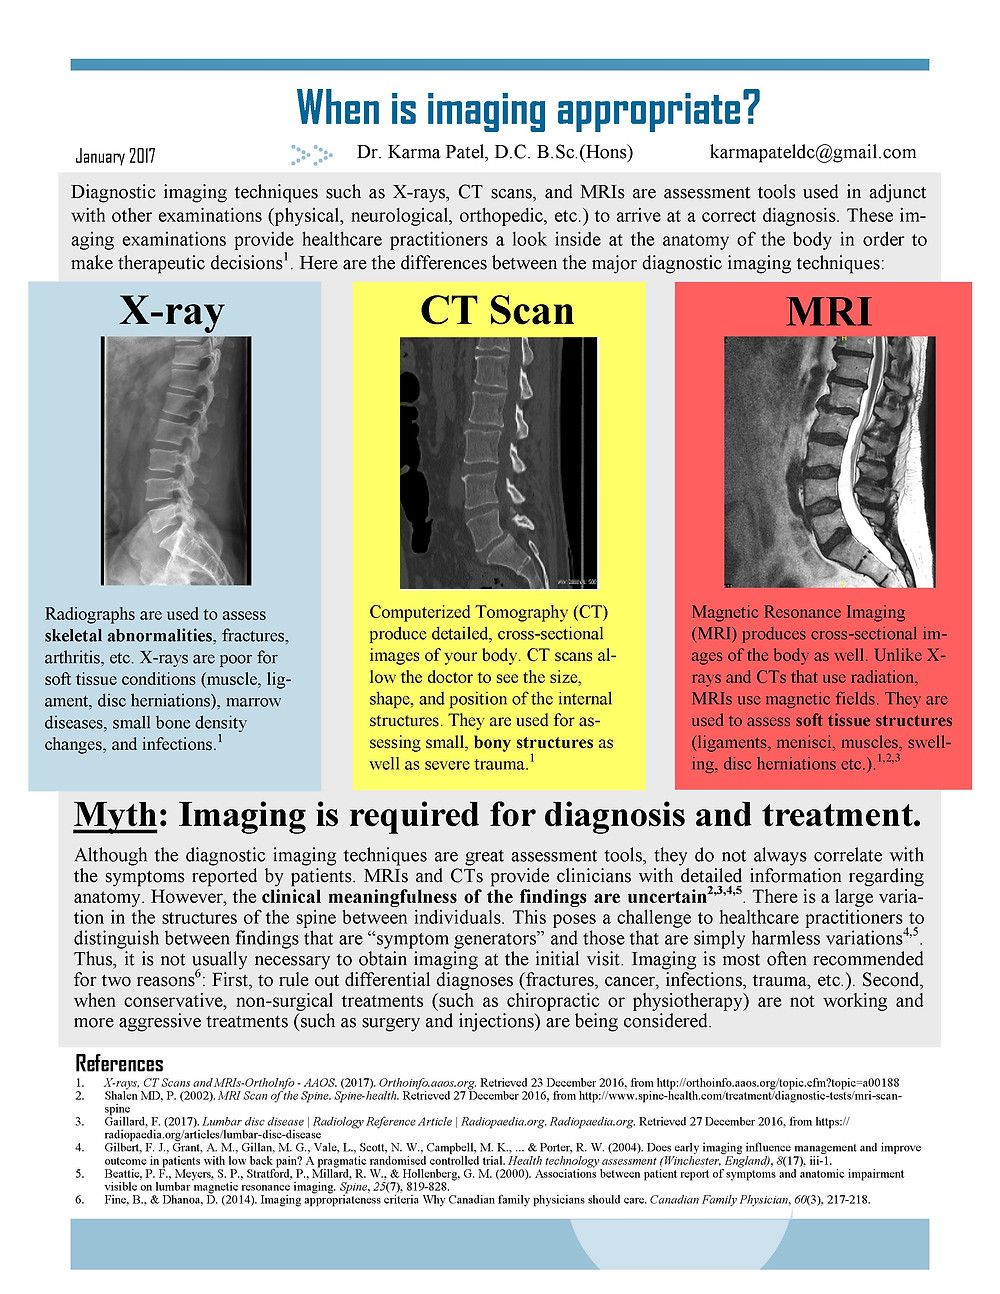 Why you don't need an x-ray, CT scan, or MRI right away.